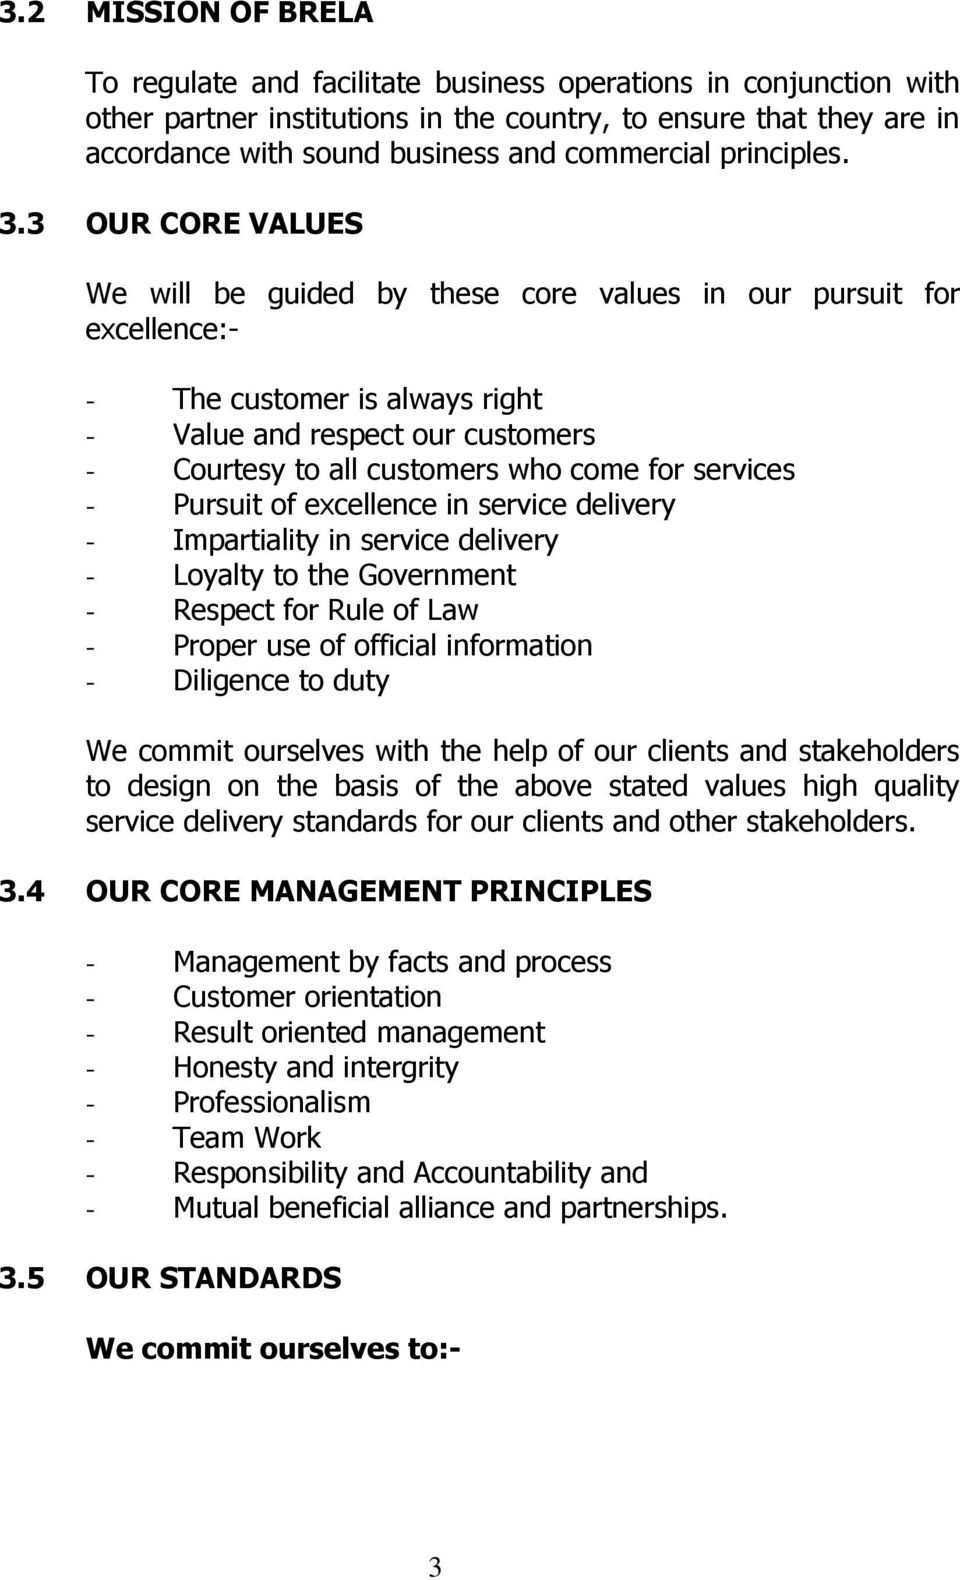 3 OUR CORE VALUES We will be guided by these core values in our pursuit for excellence:- - The customer is always right - Value and respect our customers - Courtesy to all customers who come for